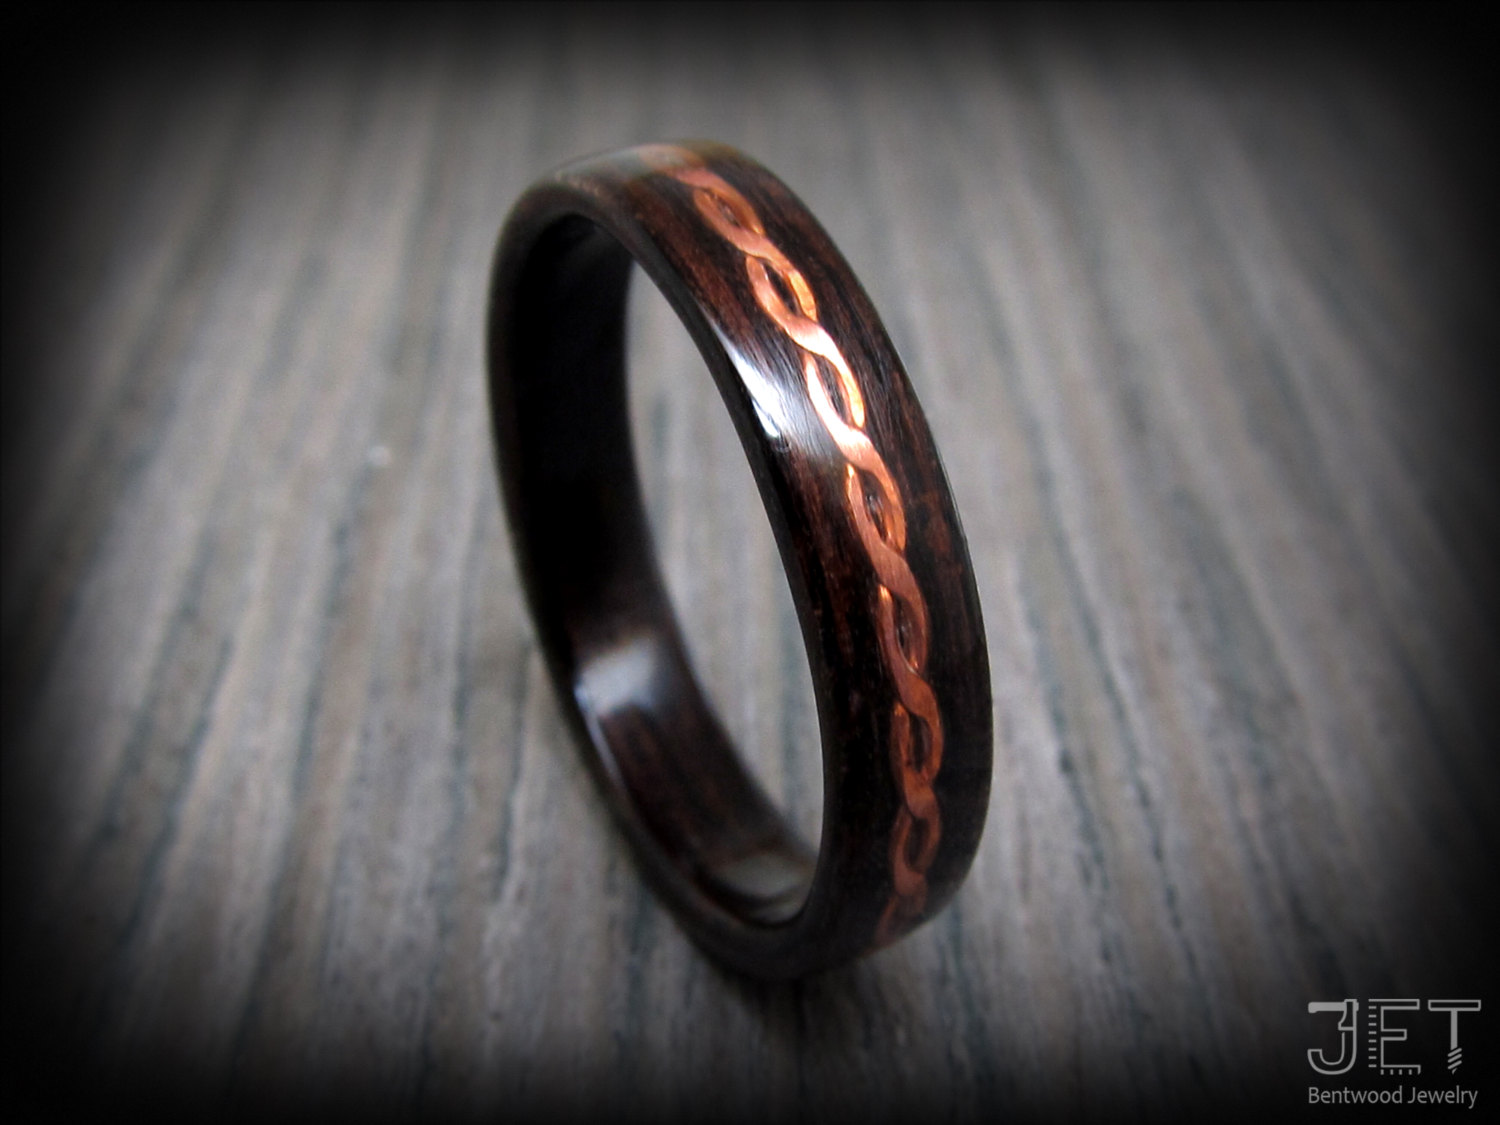 Steam Bent-Wood Ring, Macassar Ebony by JET Bentwood Jewelry on Zibbet